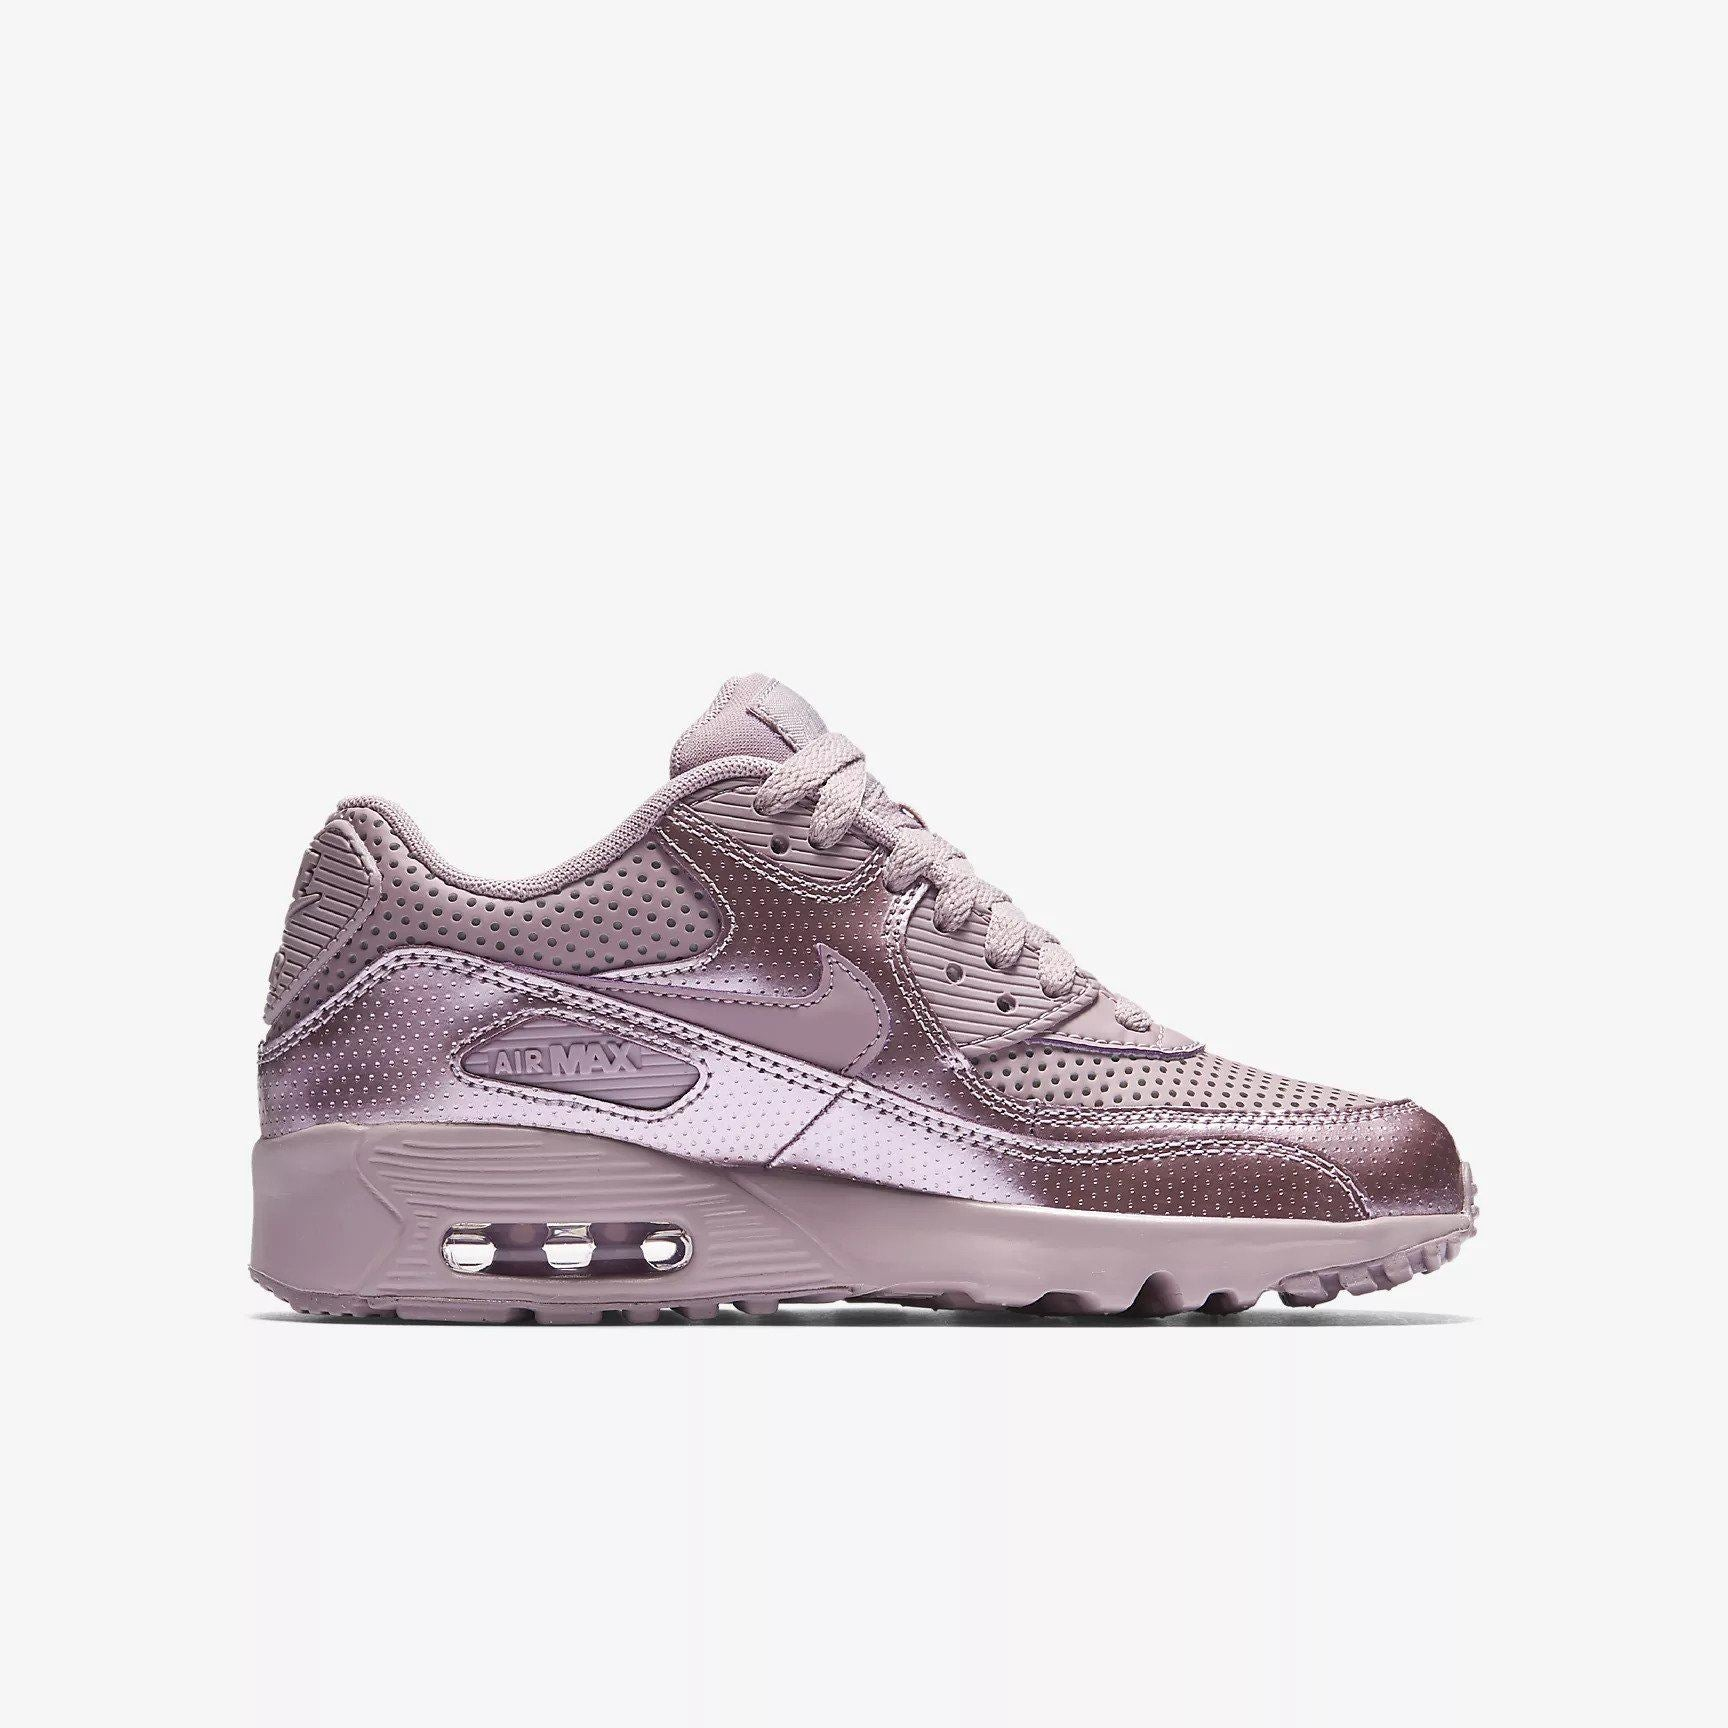 54bc742d24aa Nike Air Max 90 SE LTR (GS) Elemental Rose 859633 600 – ViviFashion